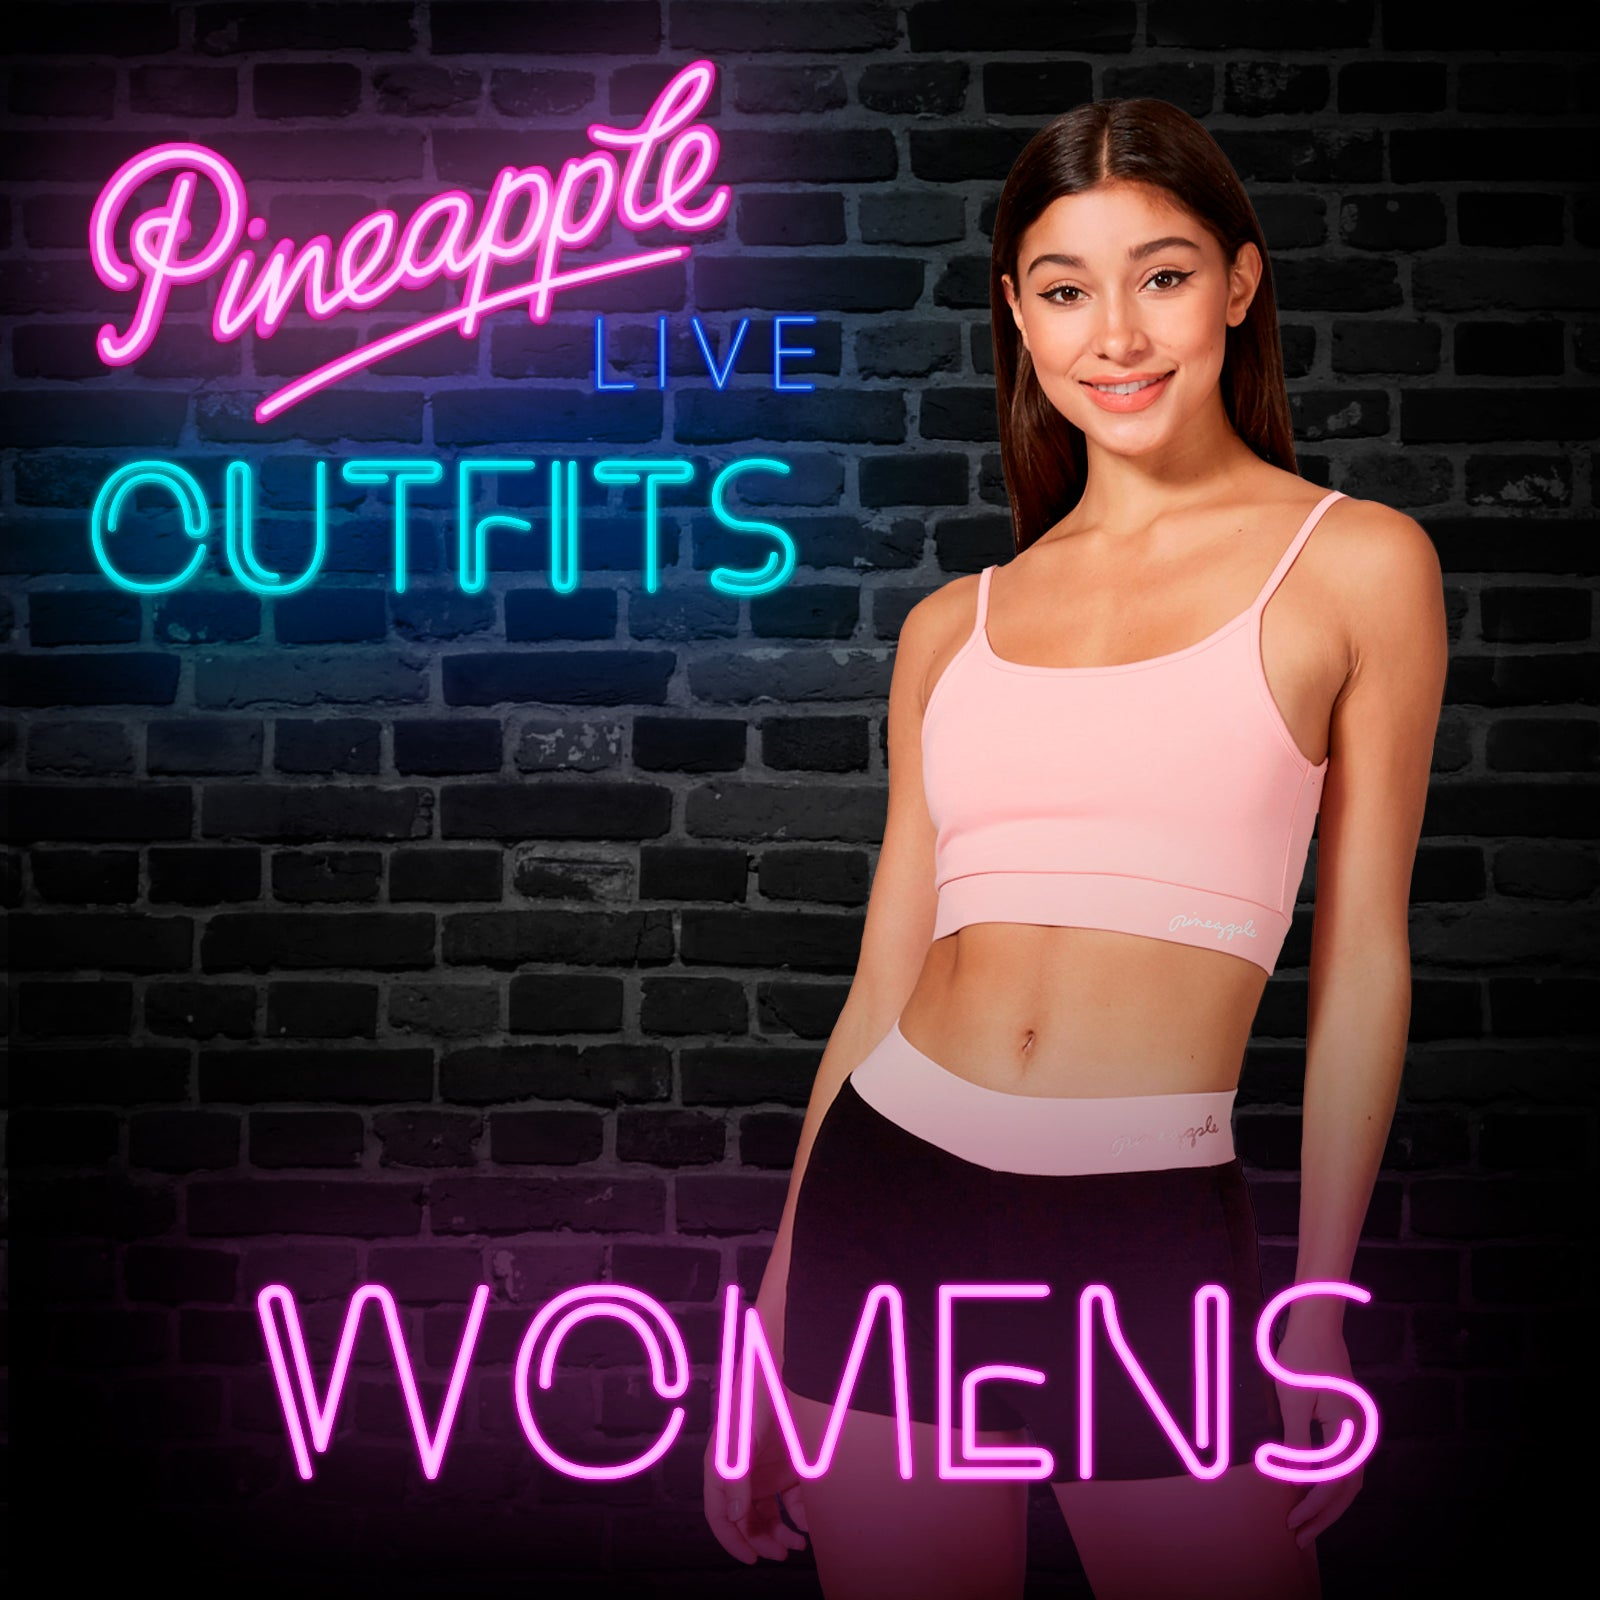 Pineapple LIVE dance class outfits for women